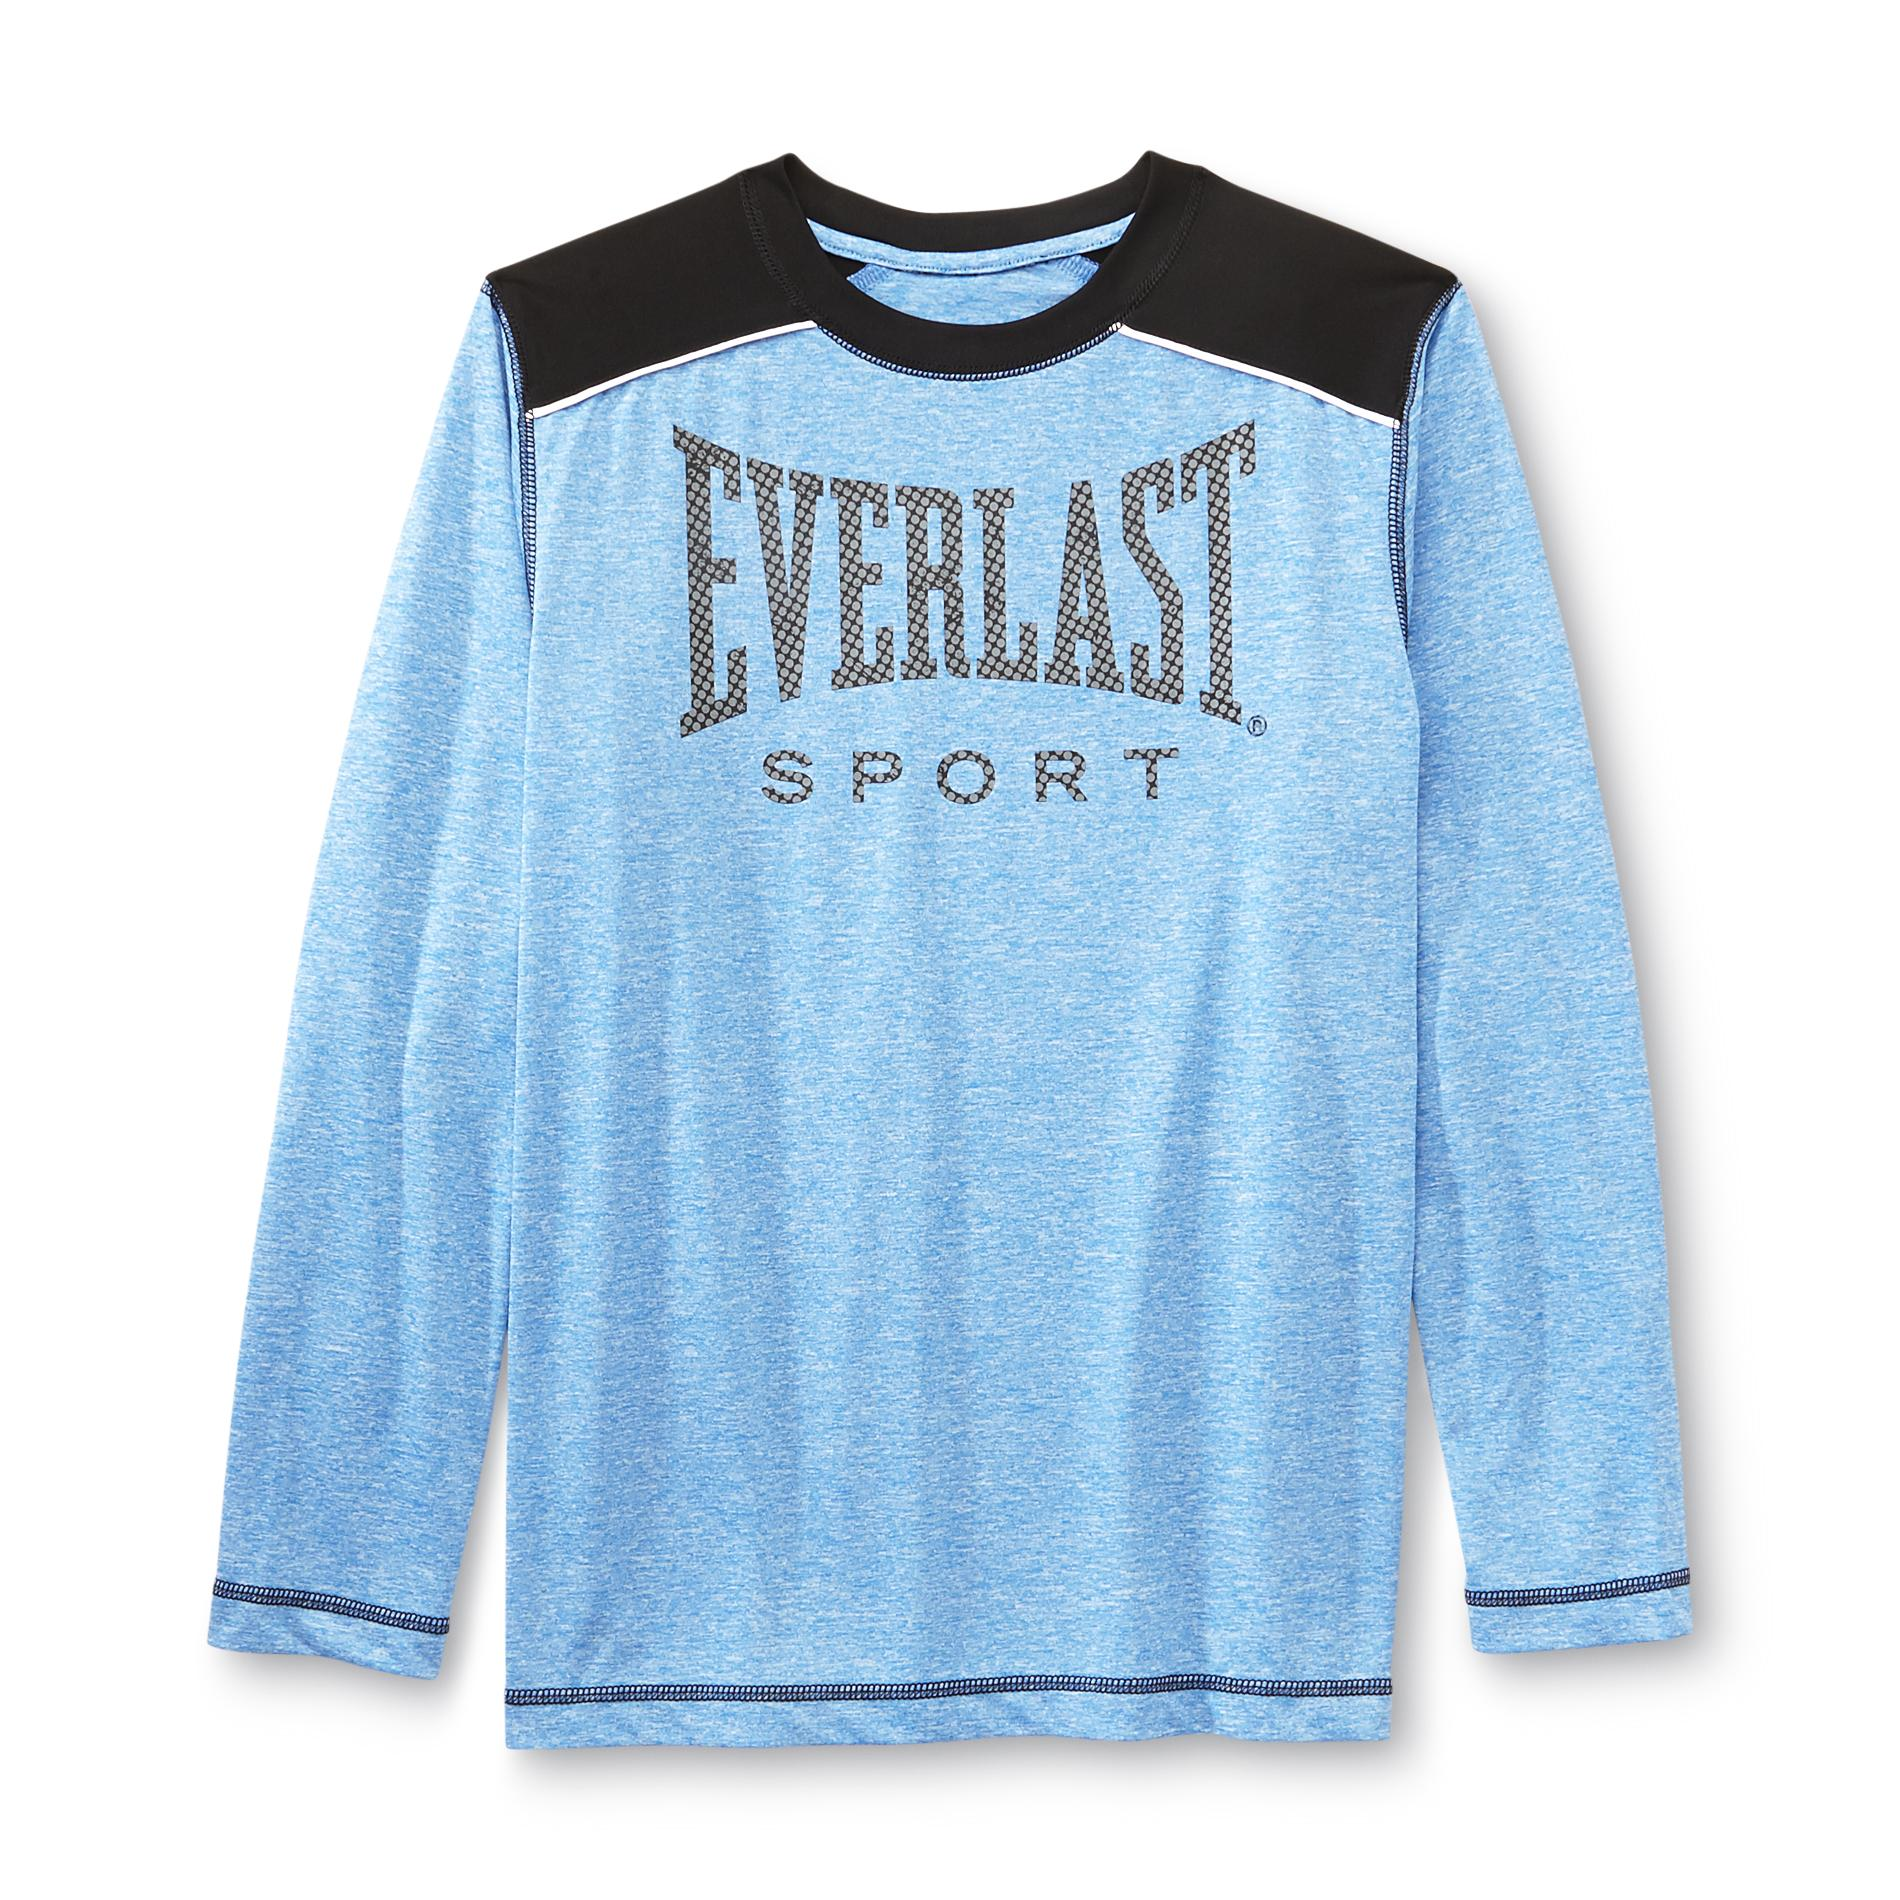 Everlast® Sport Boy's Athletic Shirt at Kmart.com